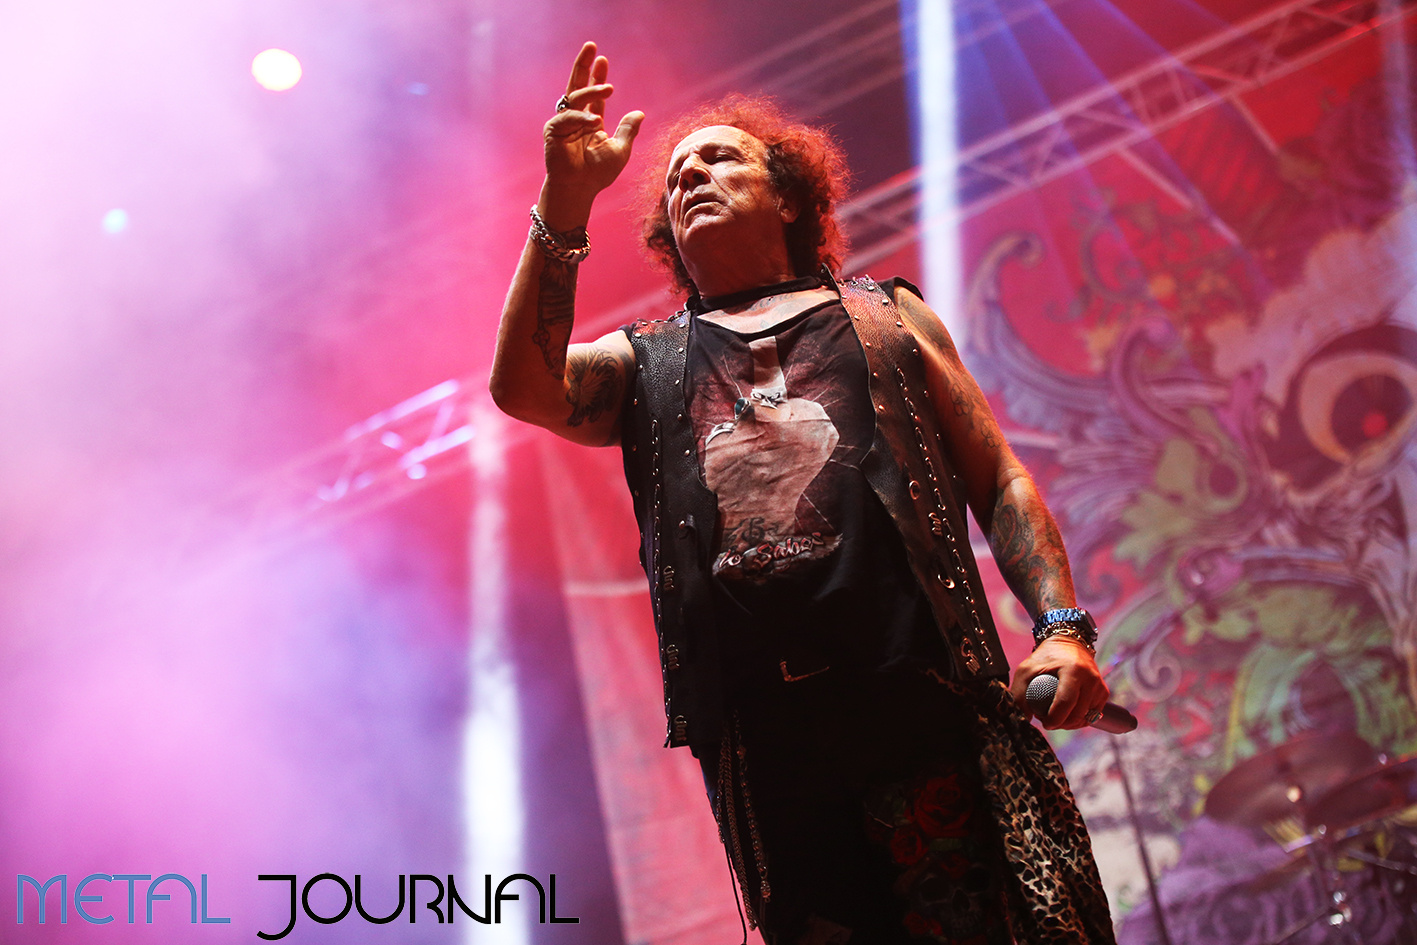 obus - leyendas del rock 2019 metal journal pic 3